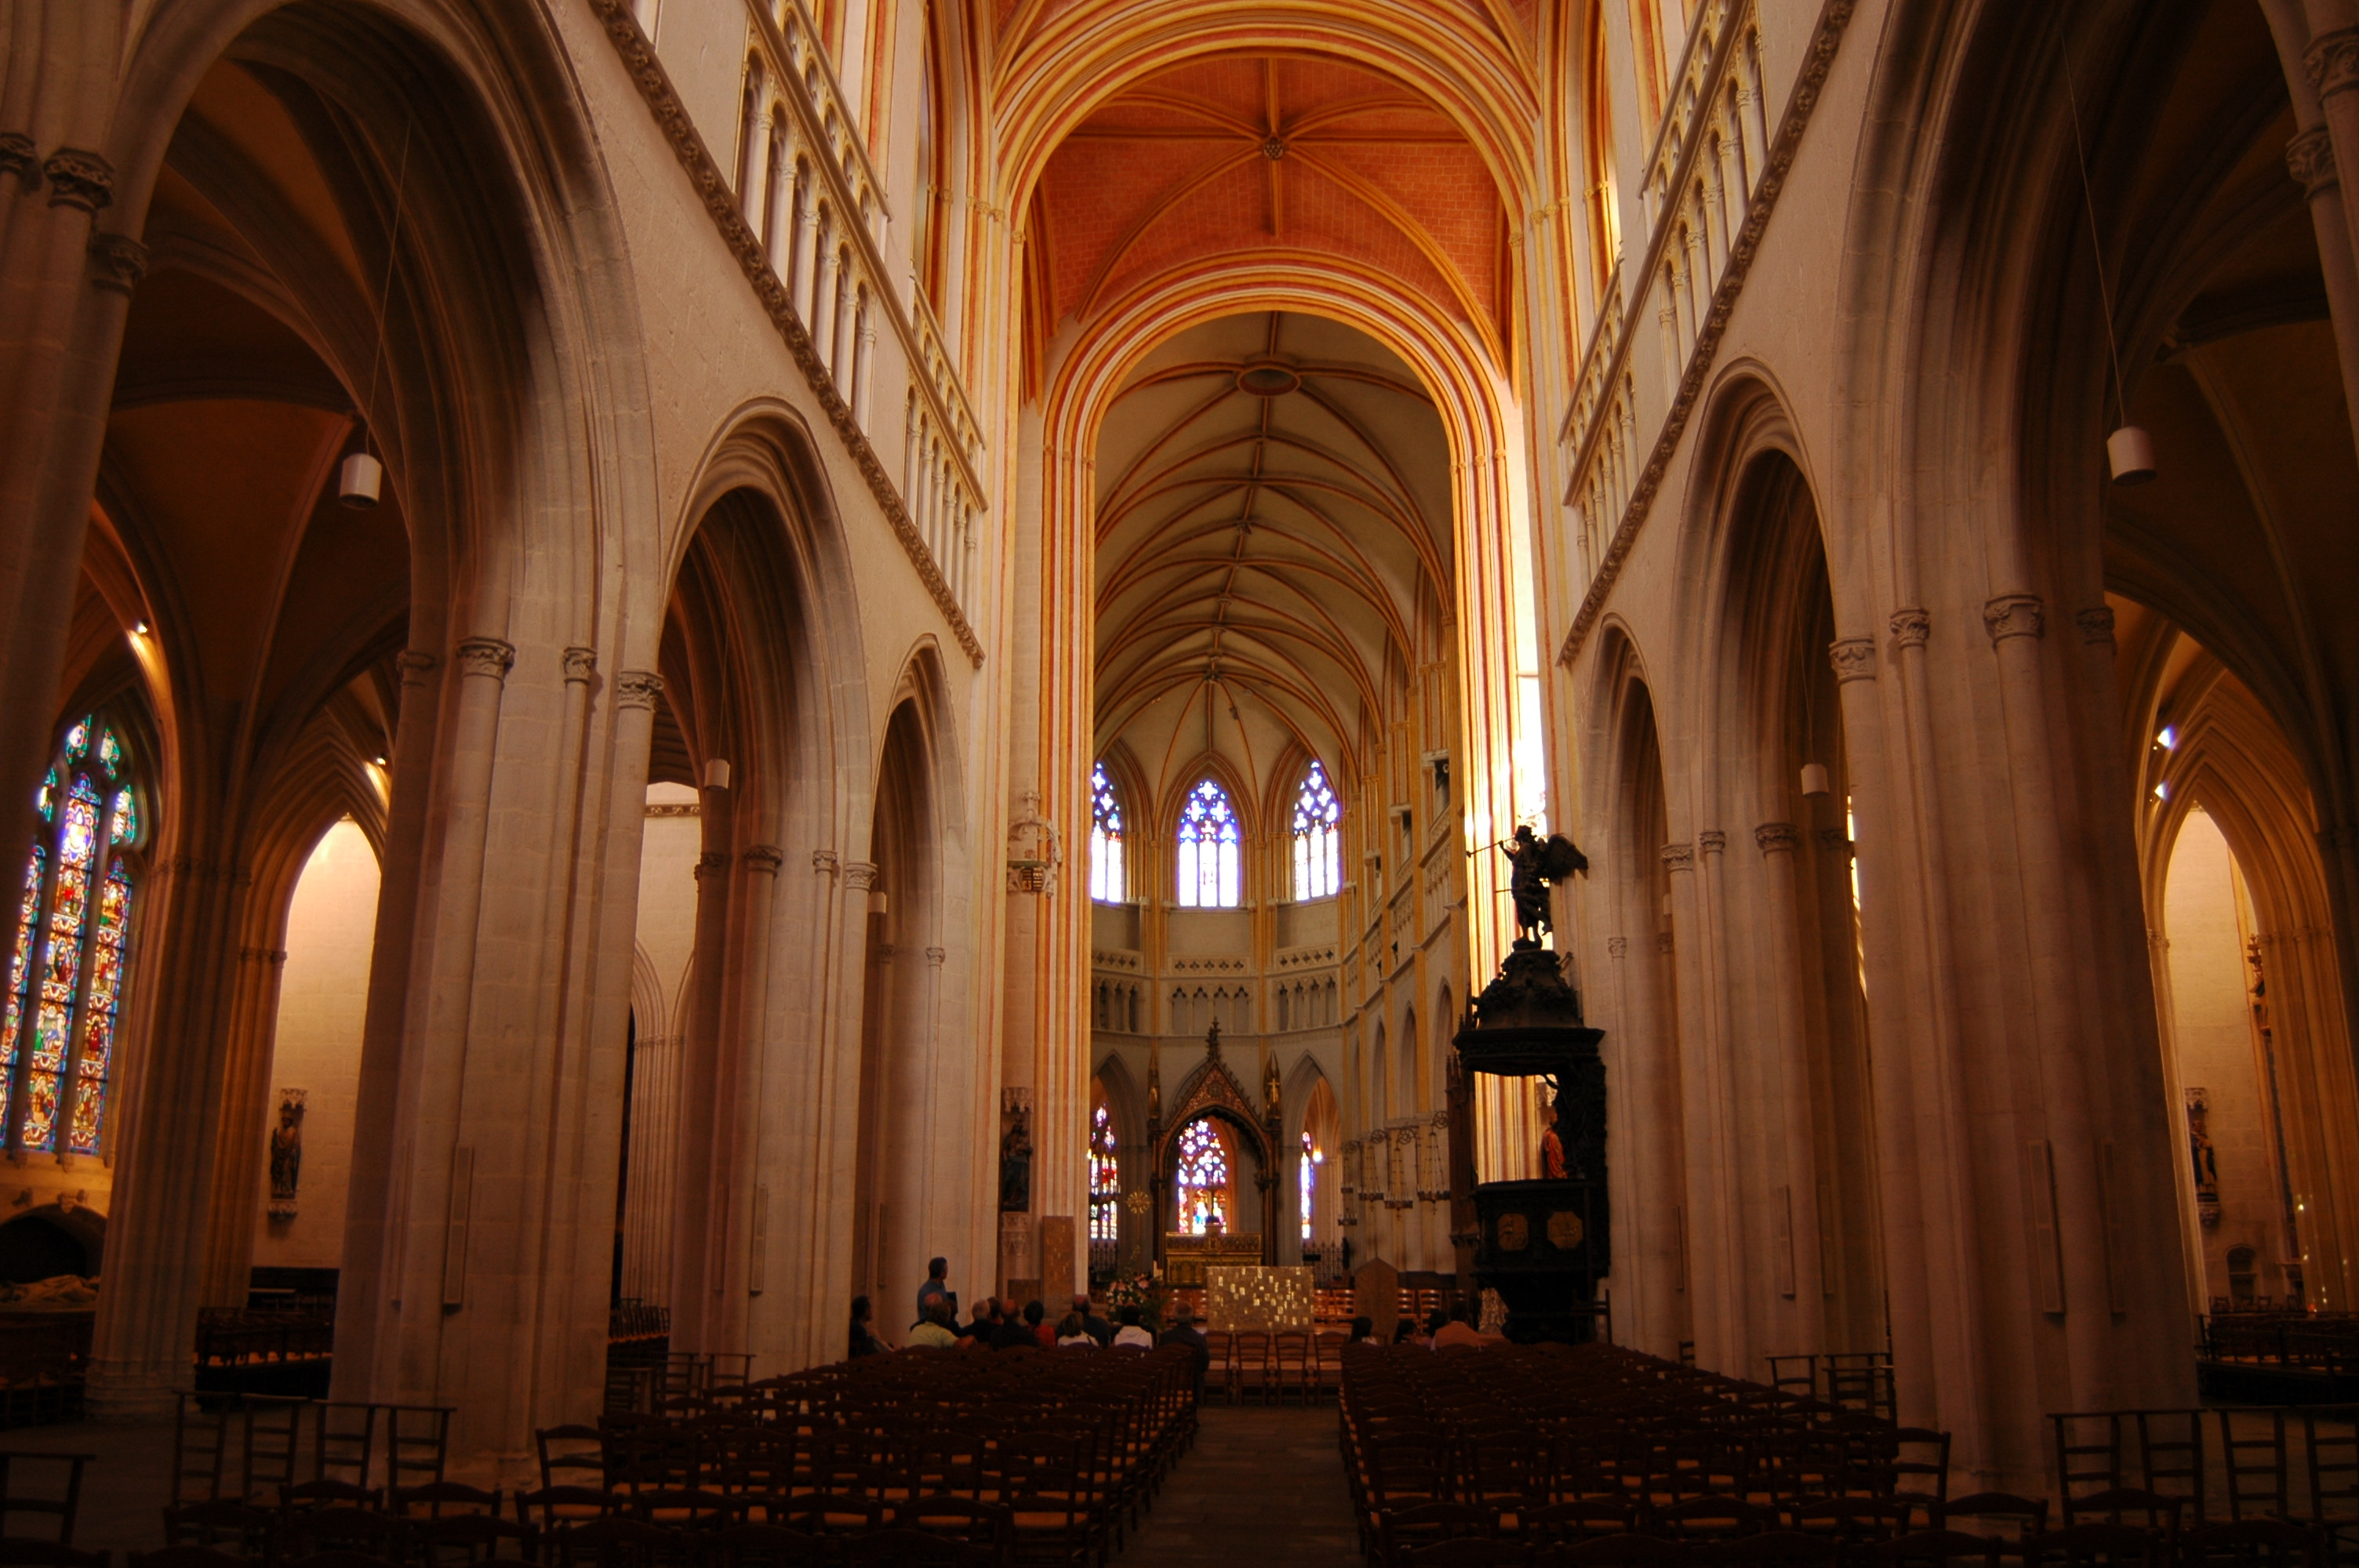 High Quality File:Quimper Saint Corentin Intérieur